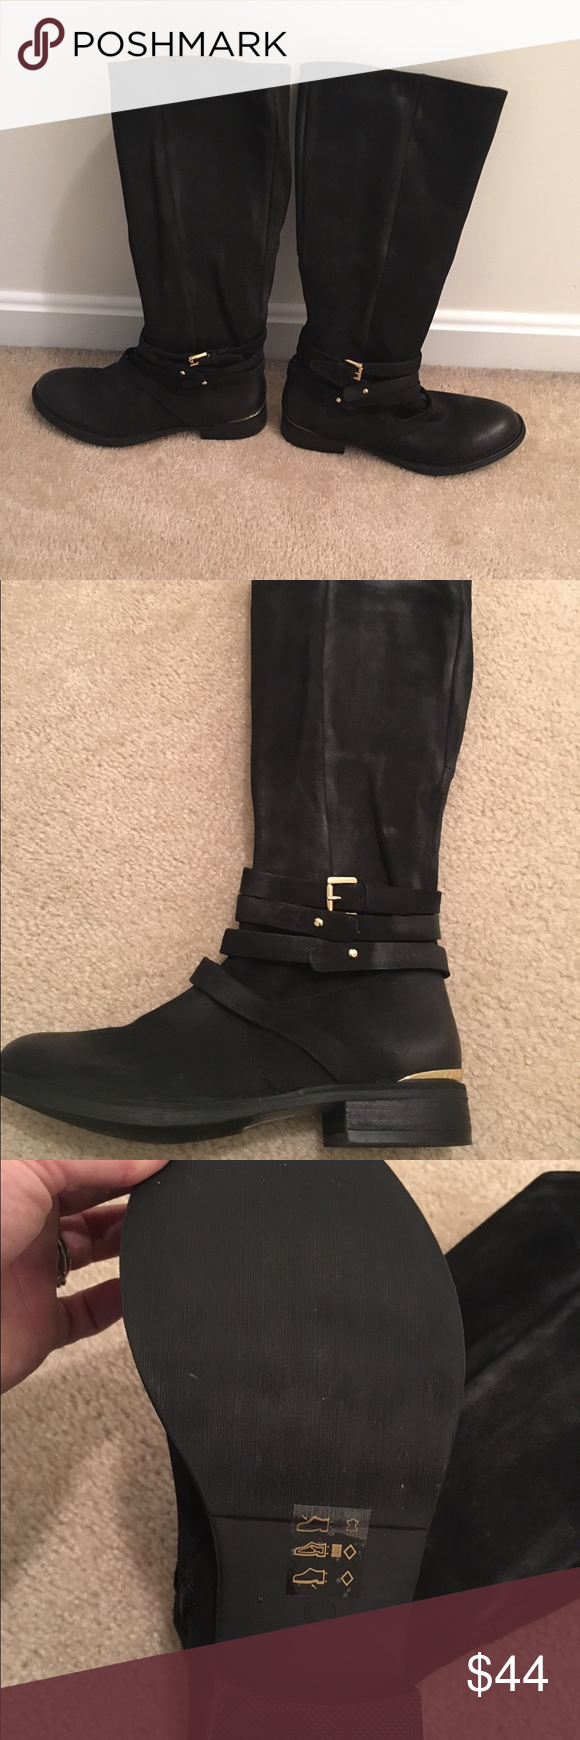 Steve Madden boots Black Steve Madden zip up knee boots, beautiful! Worn 1 time! Perfect condition! Gold detail. Shoes